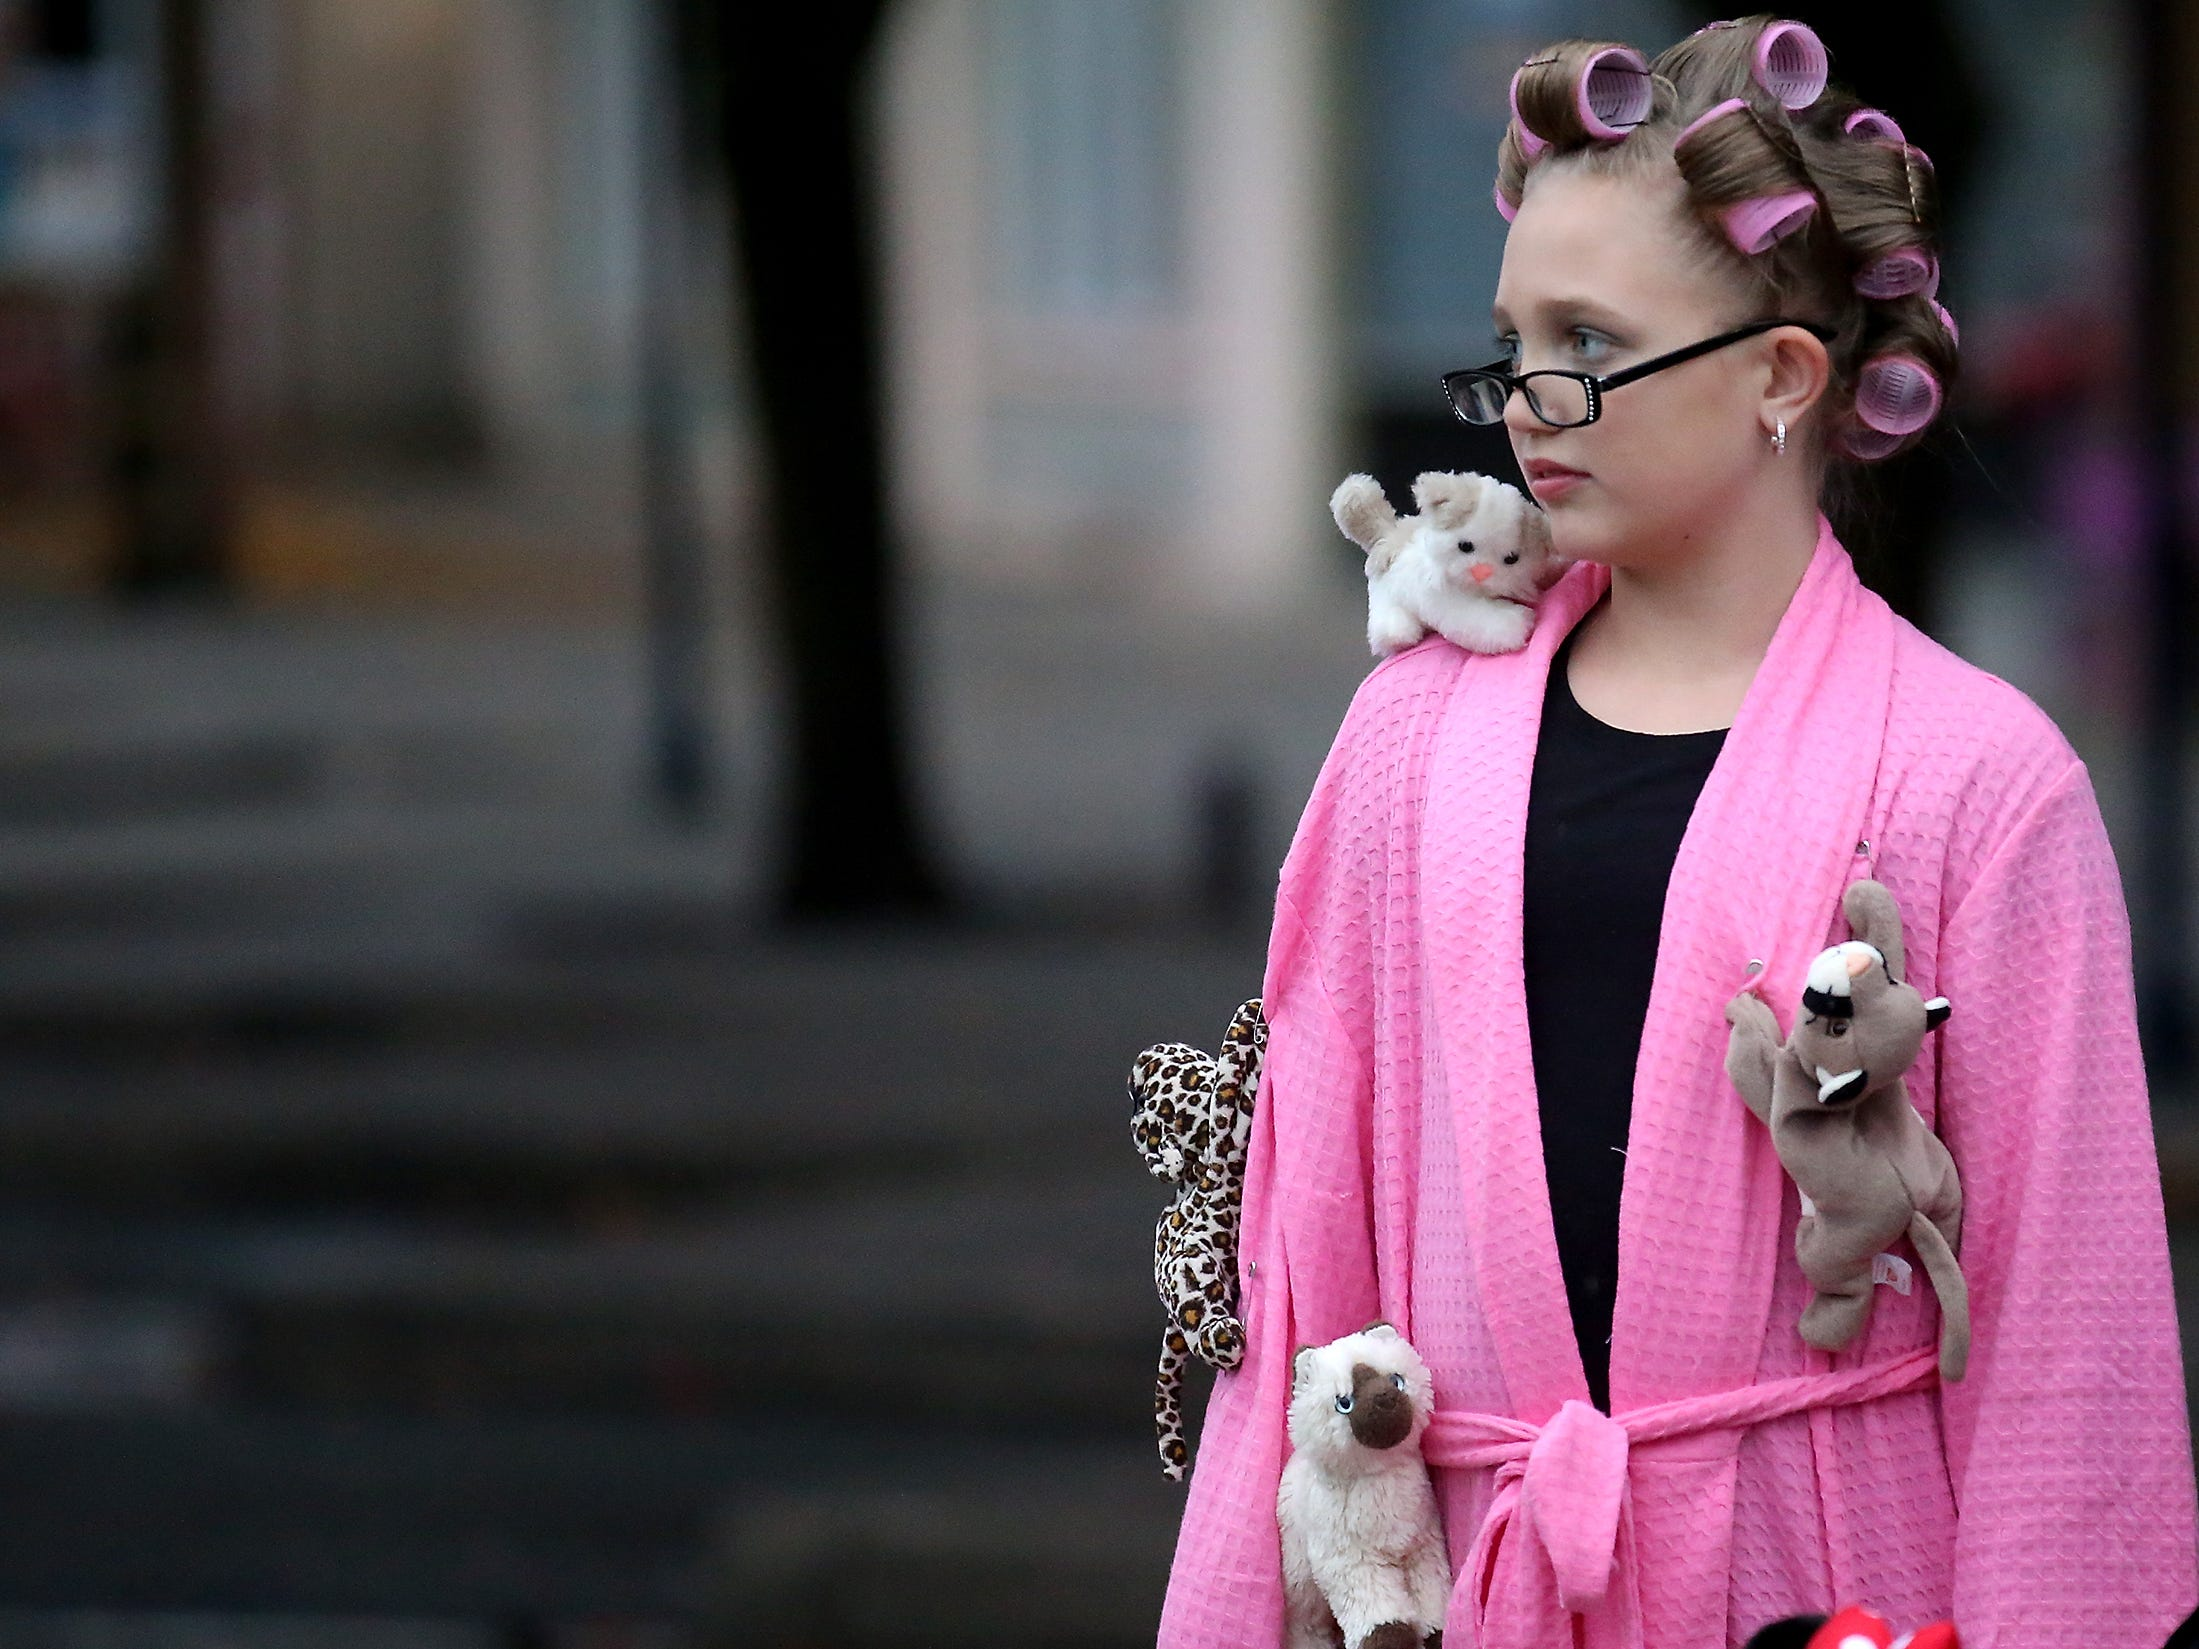 Dressed as a crazy cat lady Jaylen Jacobsen, 12, waits to cross the street while trick-or-treating with her family at Downtown Bremerton's Trick or Treat Street on Wednesday, October 31, 2018.